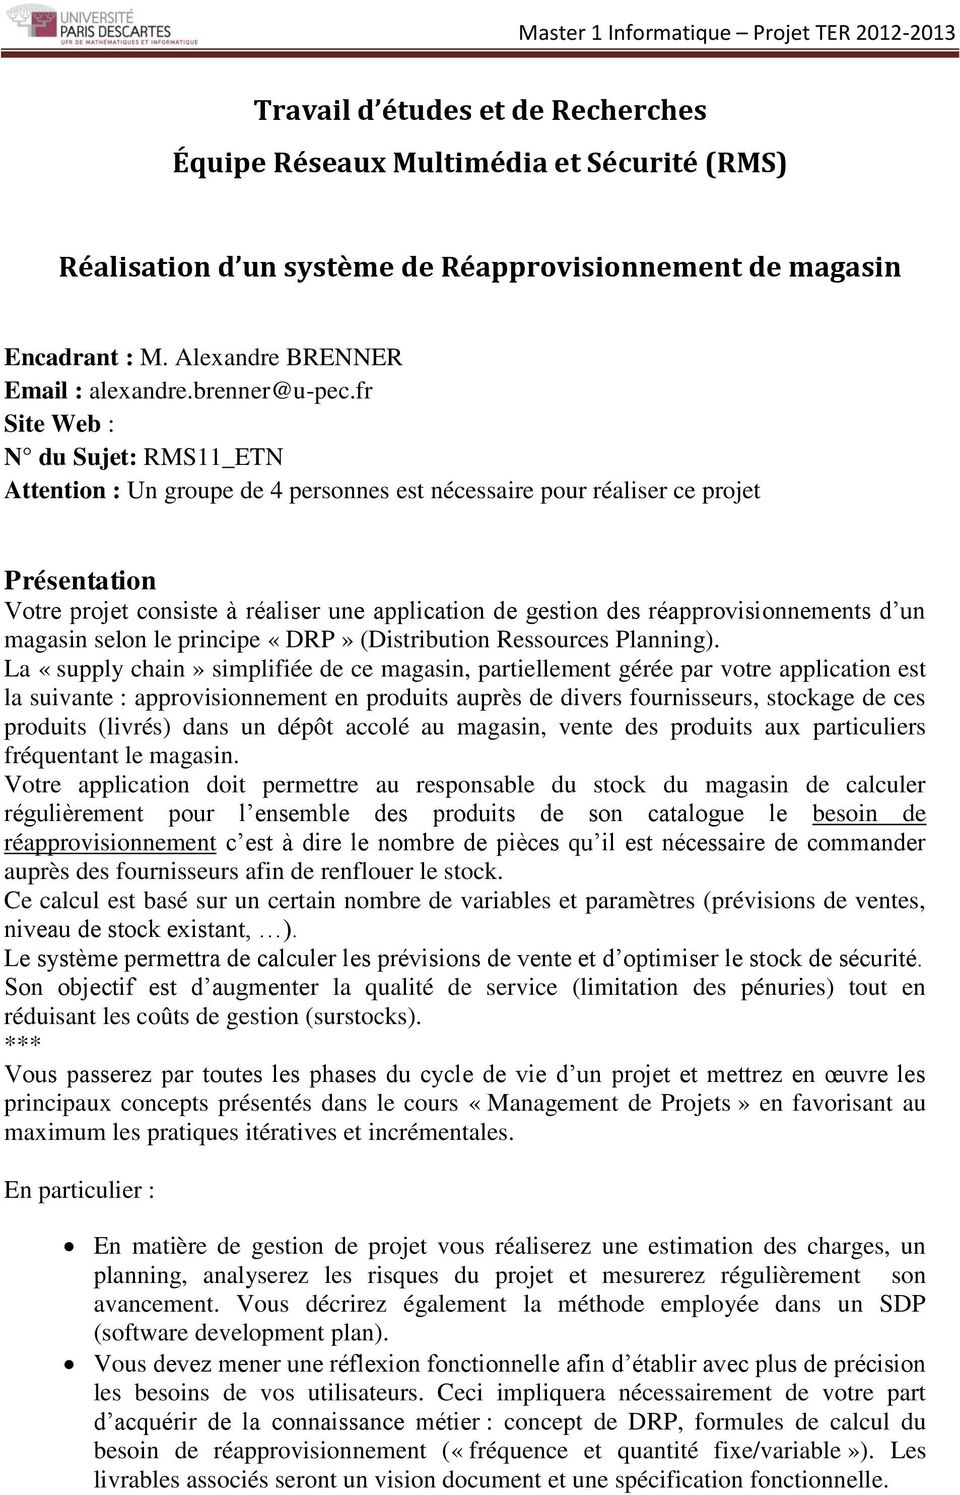 un magasin selon le principe «DRP» (Distribution Ressources Planning).